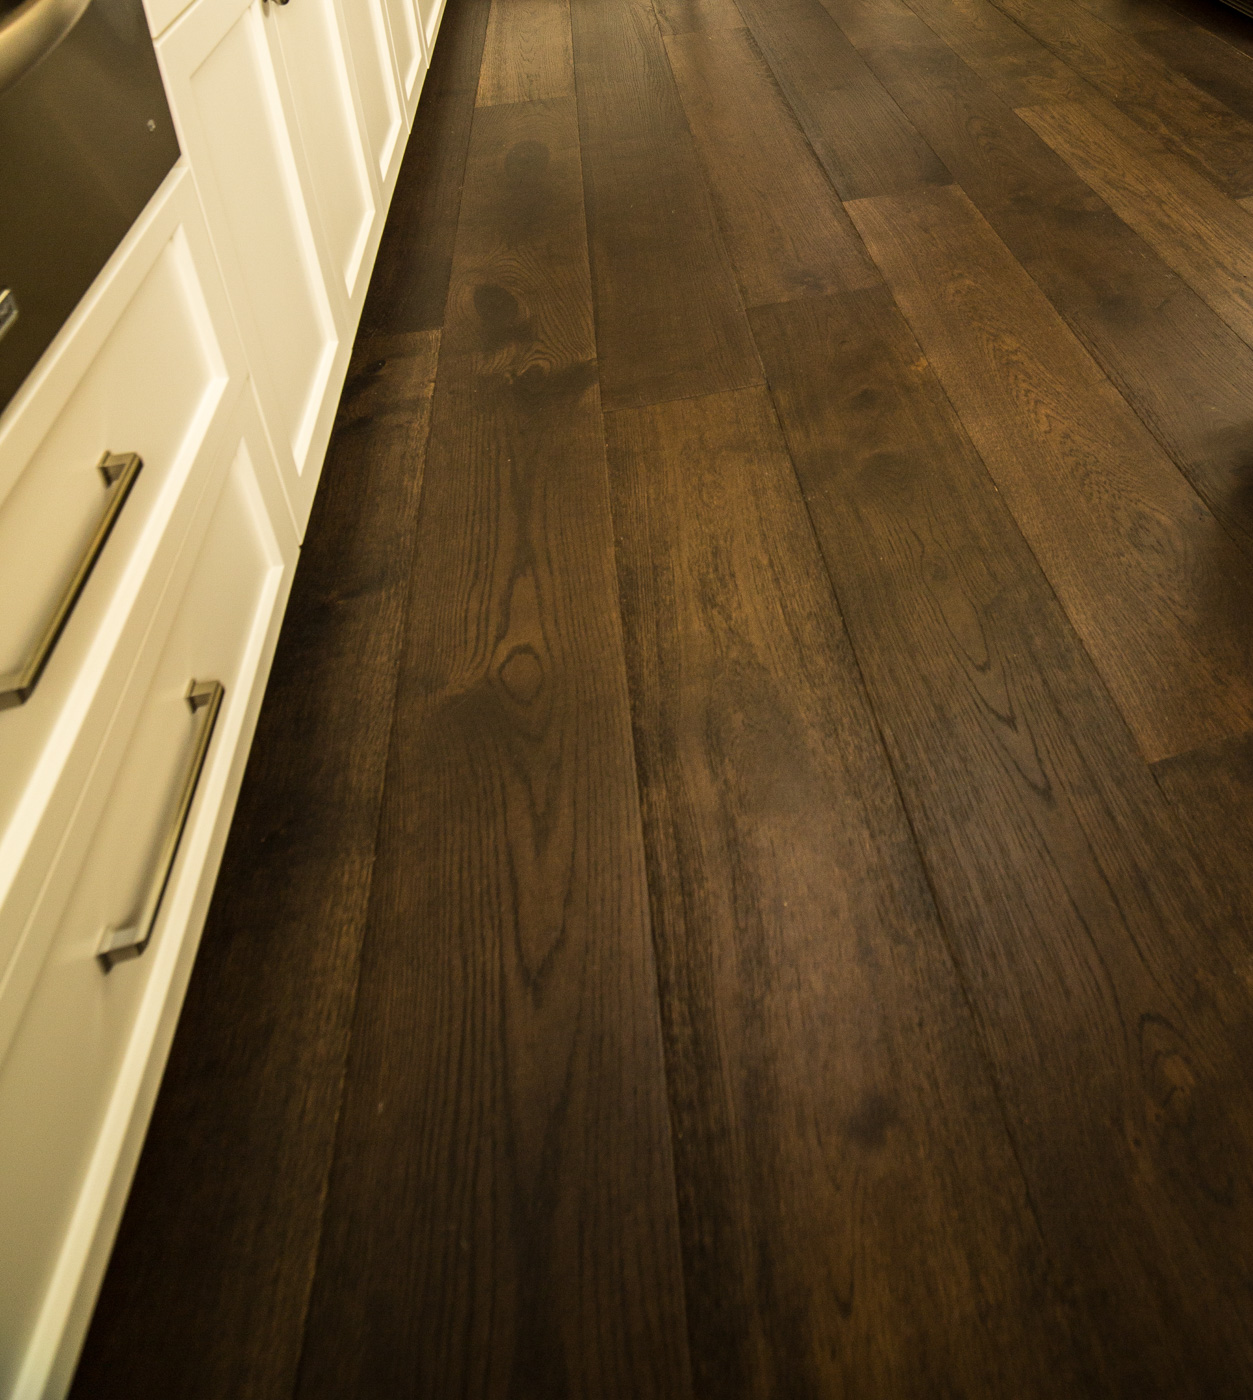 Hardwood Flooring Gallery View San Jose Hardwood Floor S